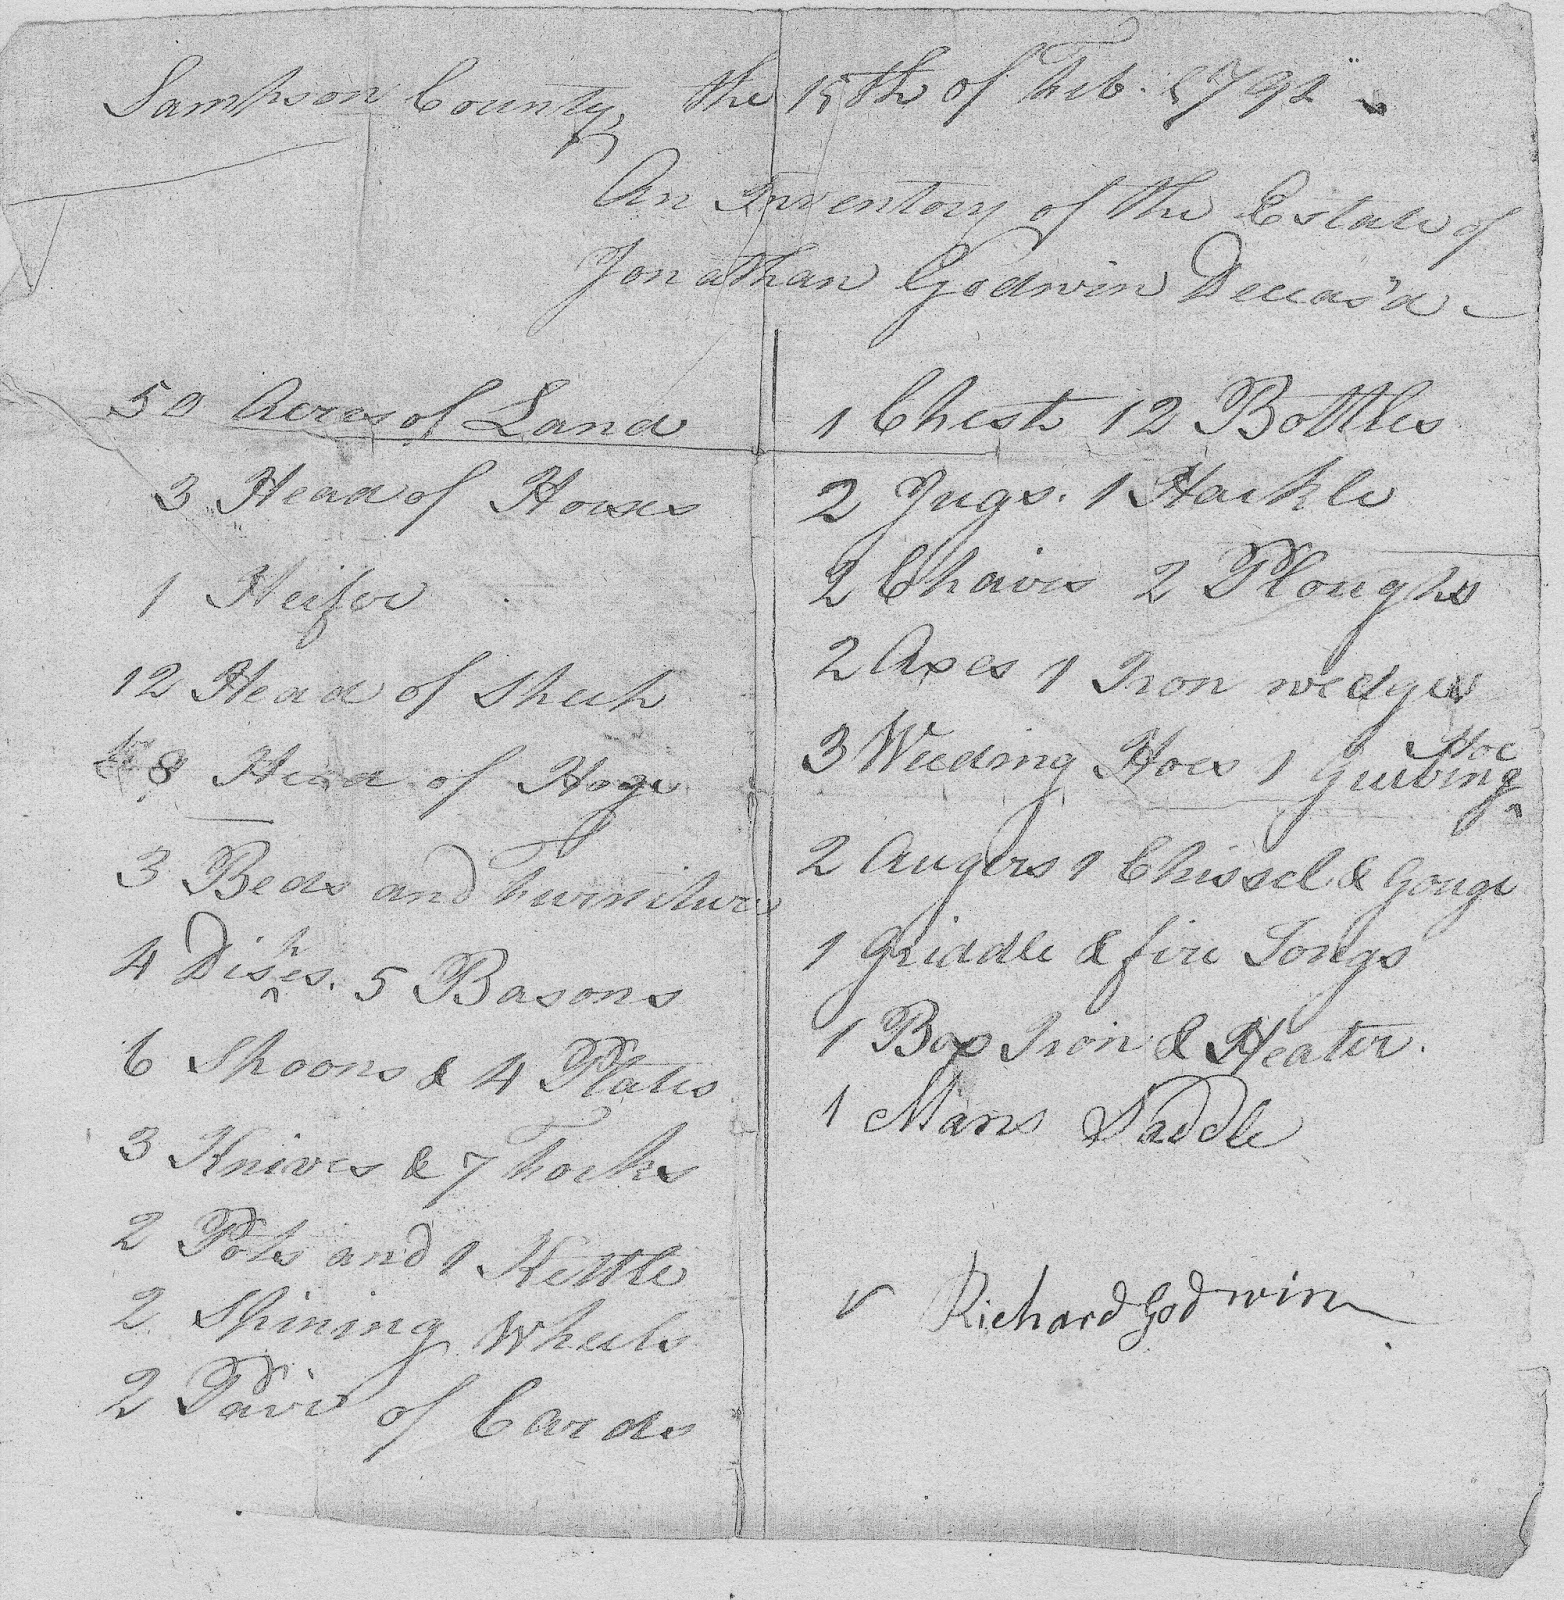 Estate Records of Jonathan Godwin of Sampson County, NC - 2